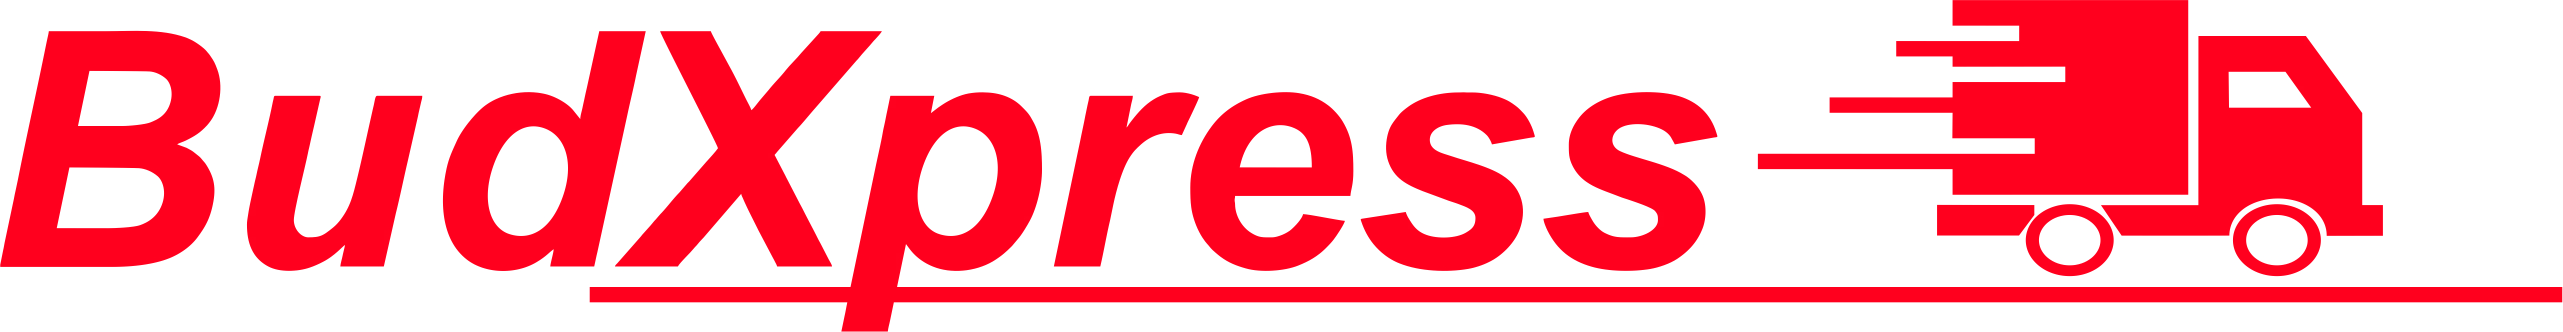 Budxpress_logo_red